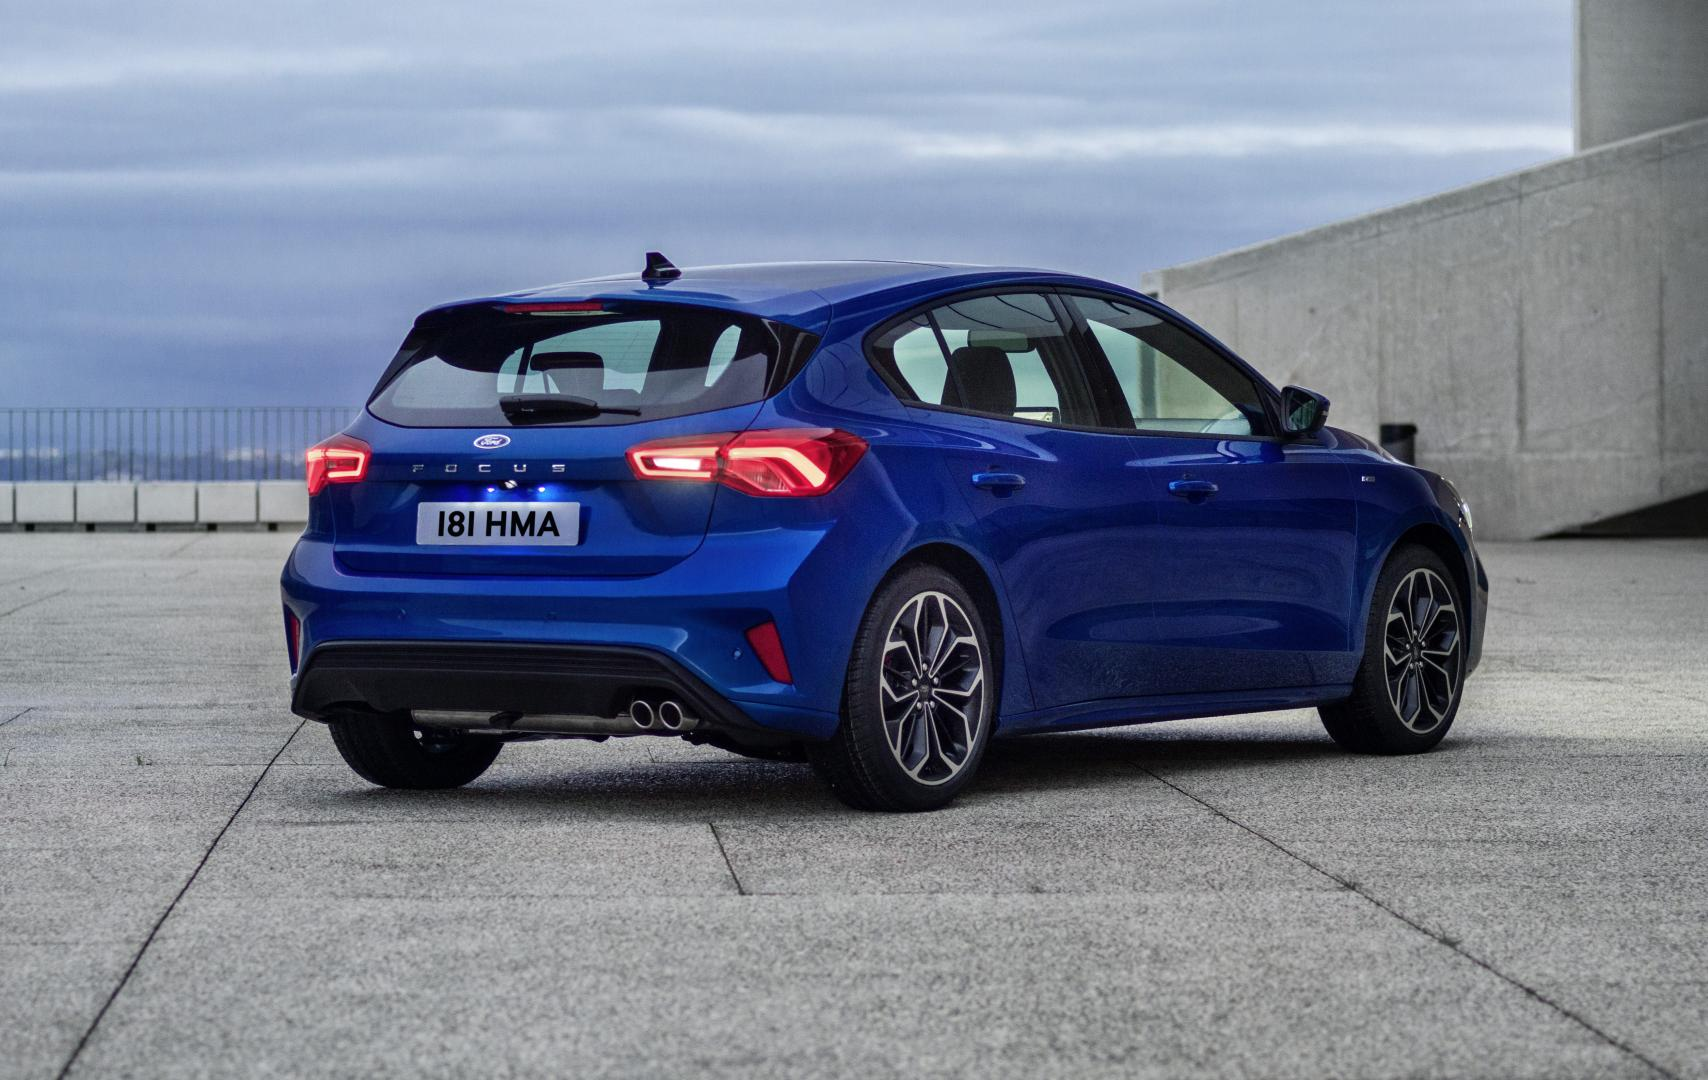 ford focus st 2018 motoren 2019 ford focus st will use 23liter ecoboost engine borrowed from. Black Bedroom Furniture Sets. Home Design Ideas